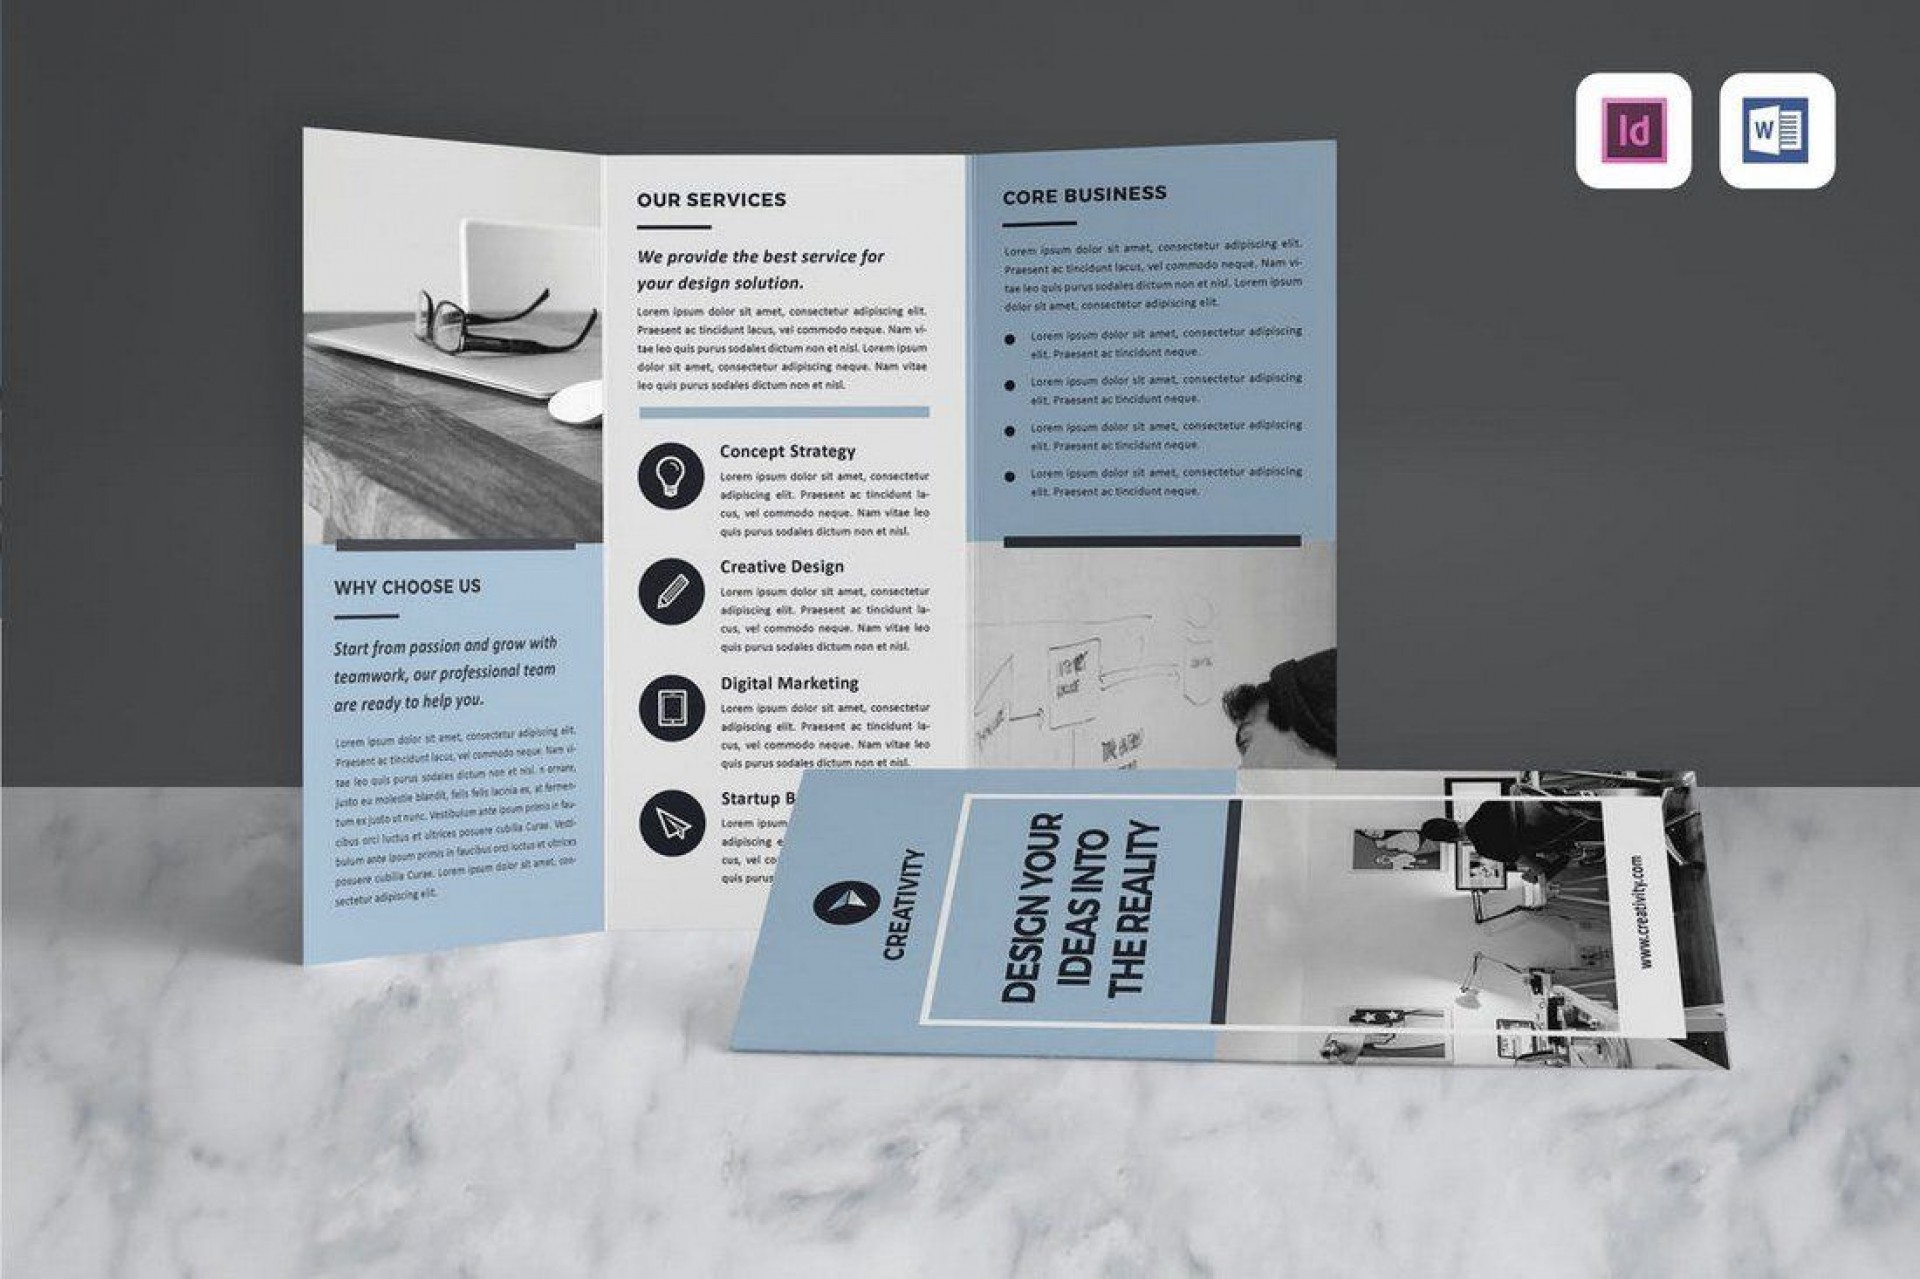 009 Unforgettable Indesign Trifold Brochure Template Highest Clarity  Templates Adobe Tri Fold Bi Free Download1920